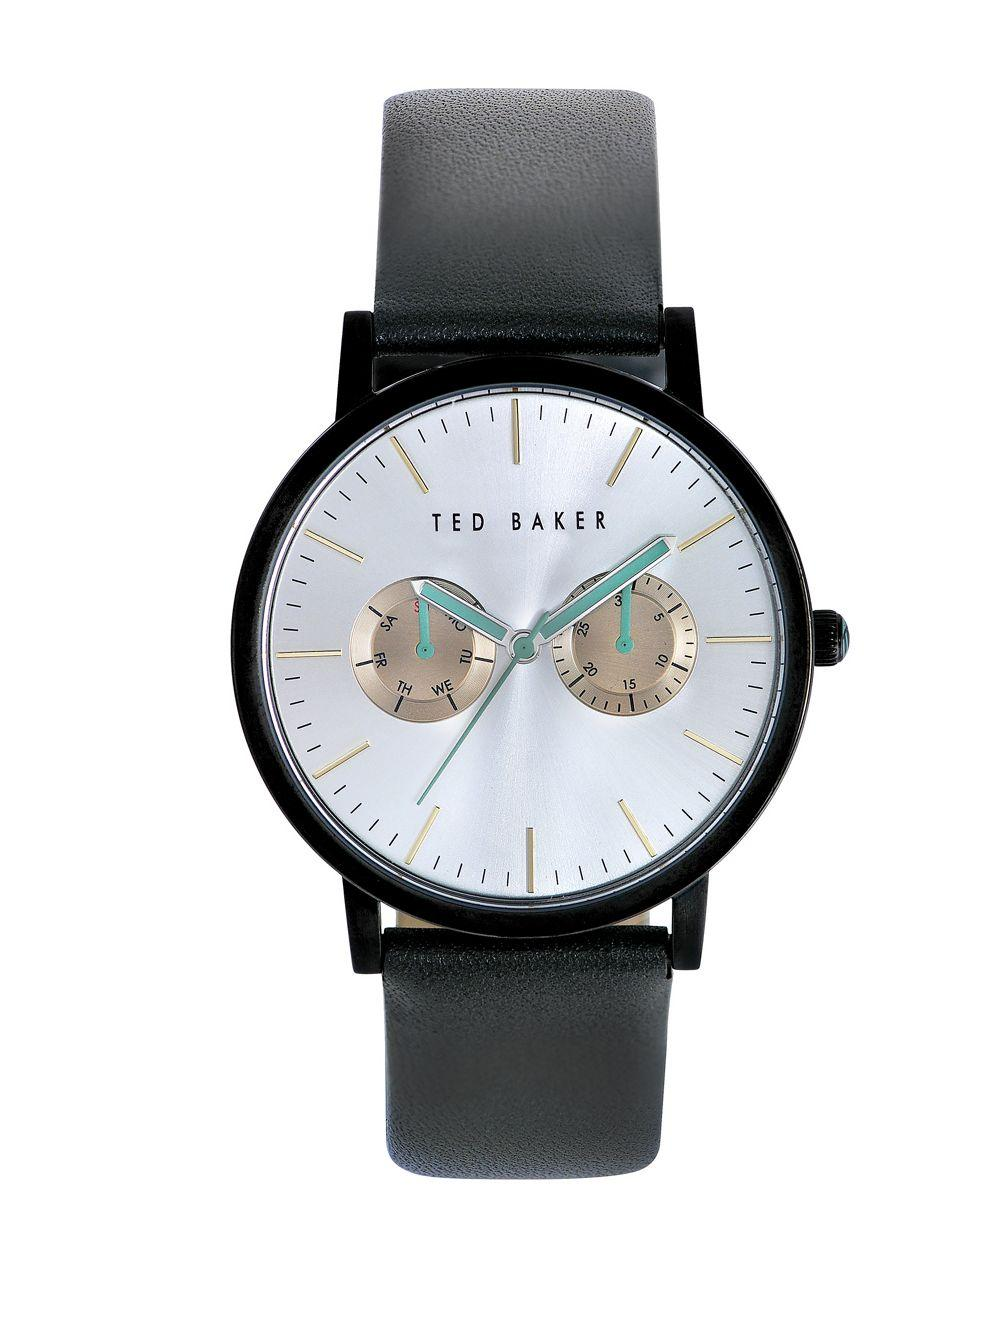 Ted baker smart casual black stainless steel and leather